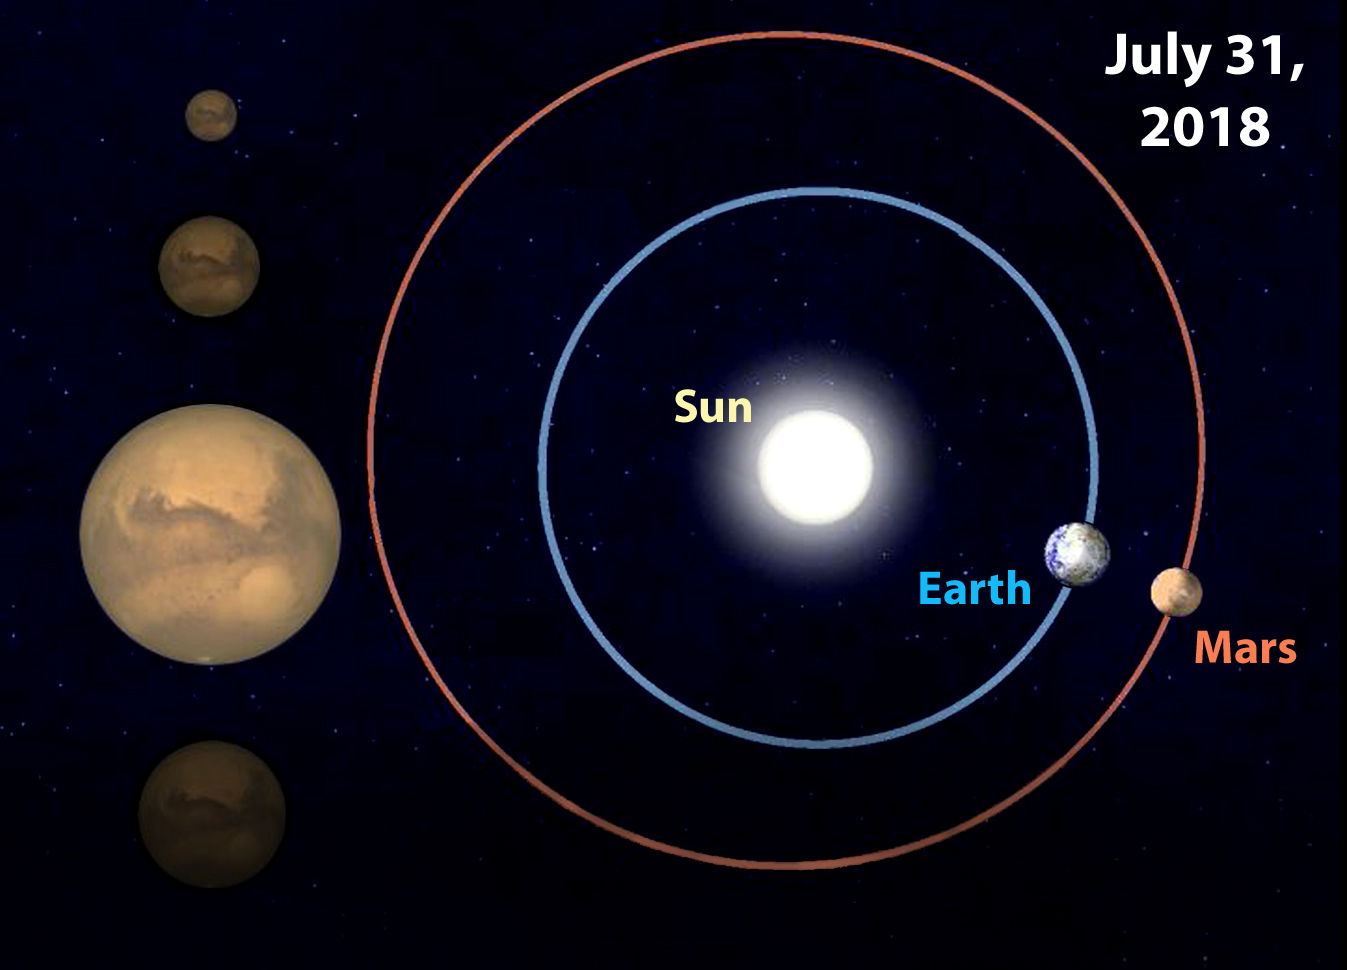 "From SkyandTelescope.com: ""On July 31st, Earth and Mars will be separated by just 35.8 million miles (57.6 million km), their closest pairing in 15 years. So the planet looks much brighter, and telescopically it appears much bigger, as shown by the highlighted image at left."" (Sky & Telescope)"